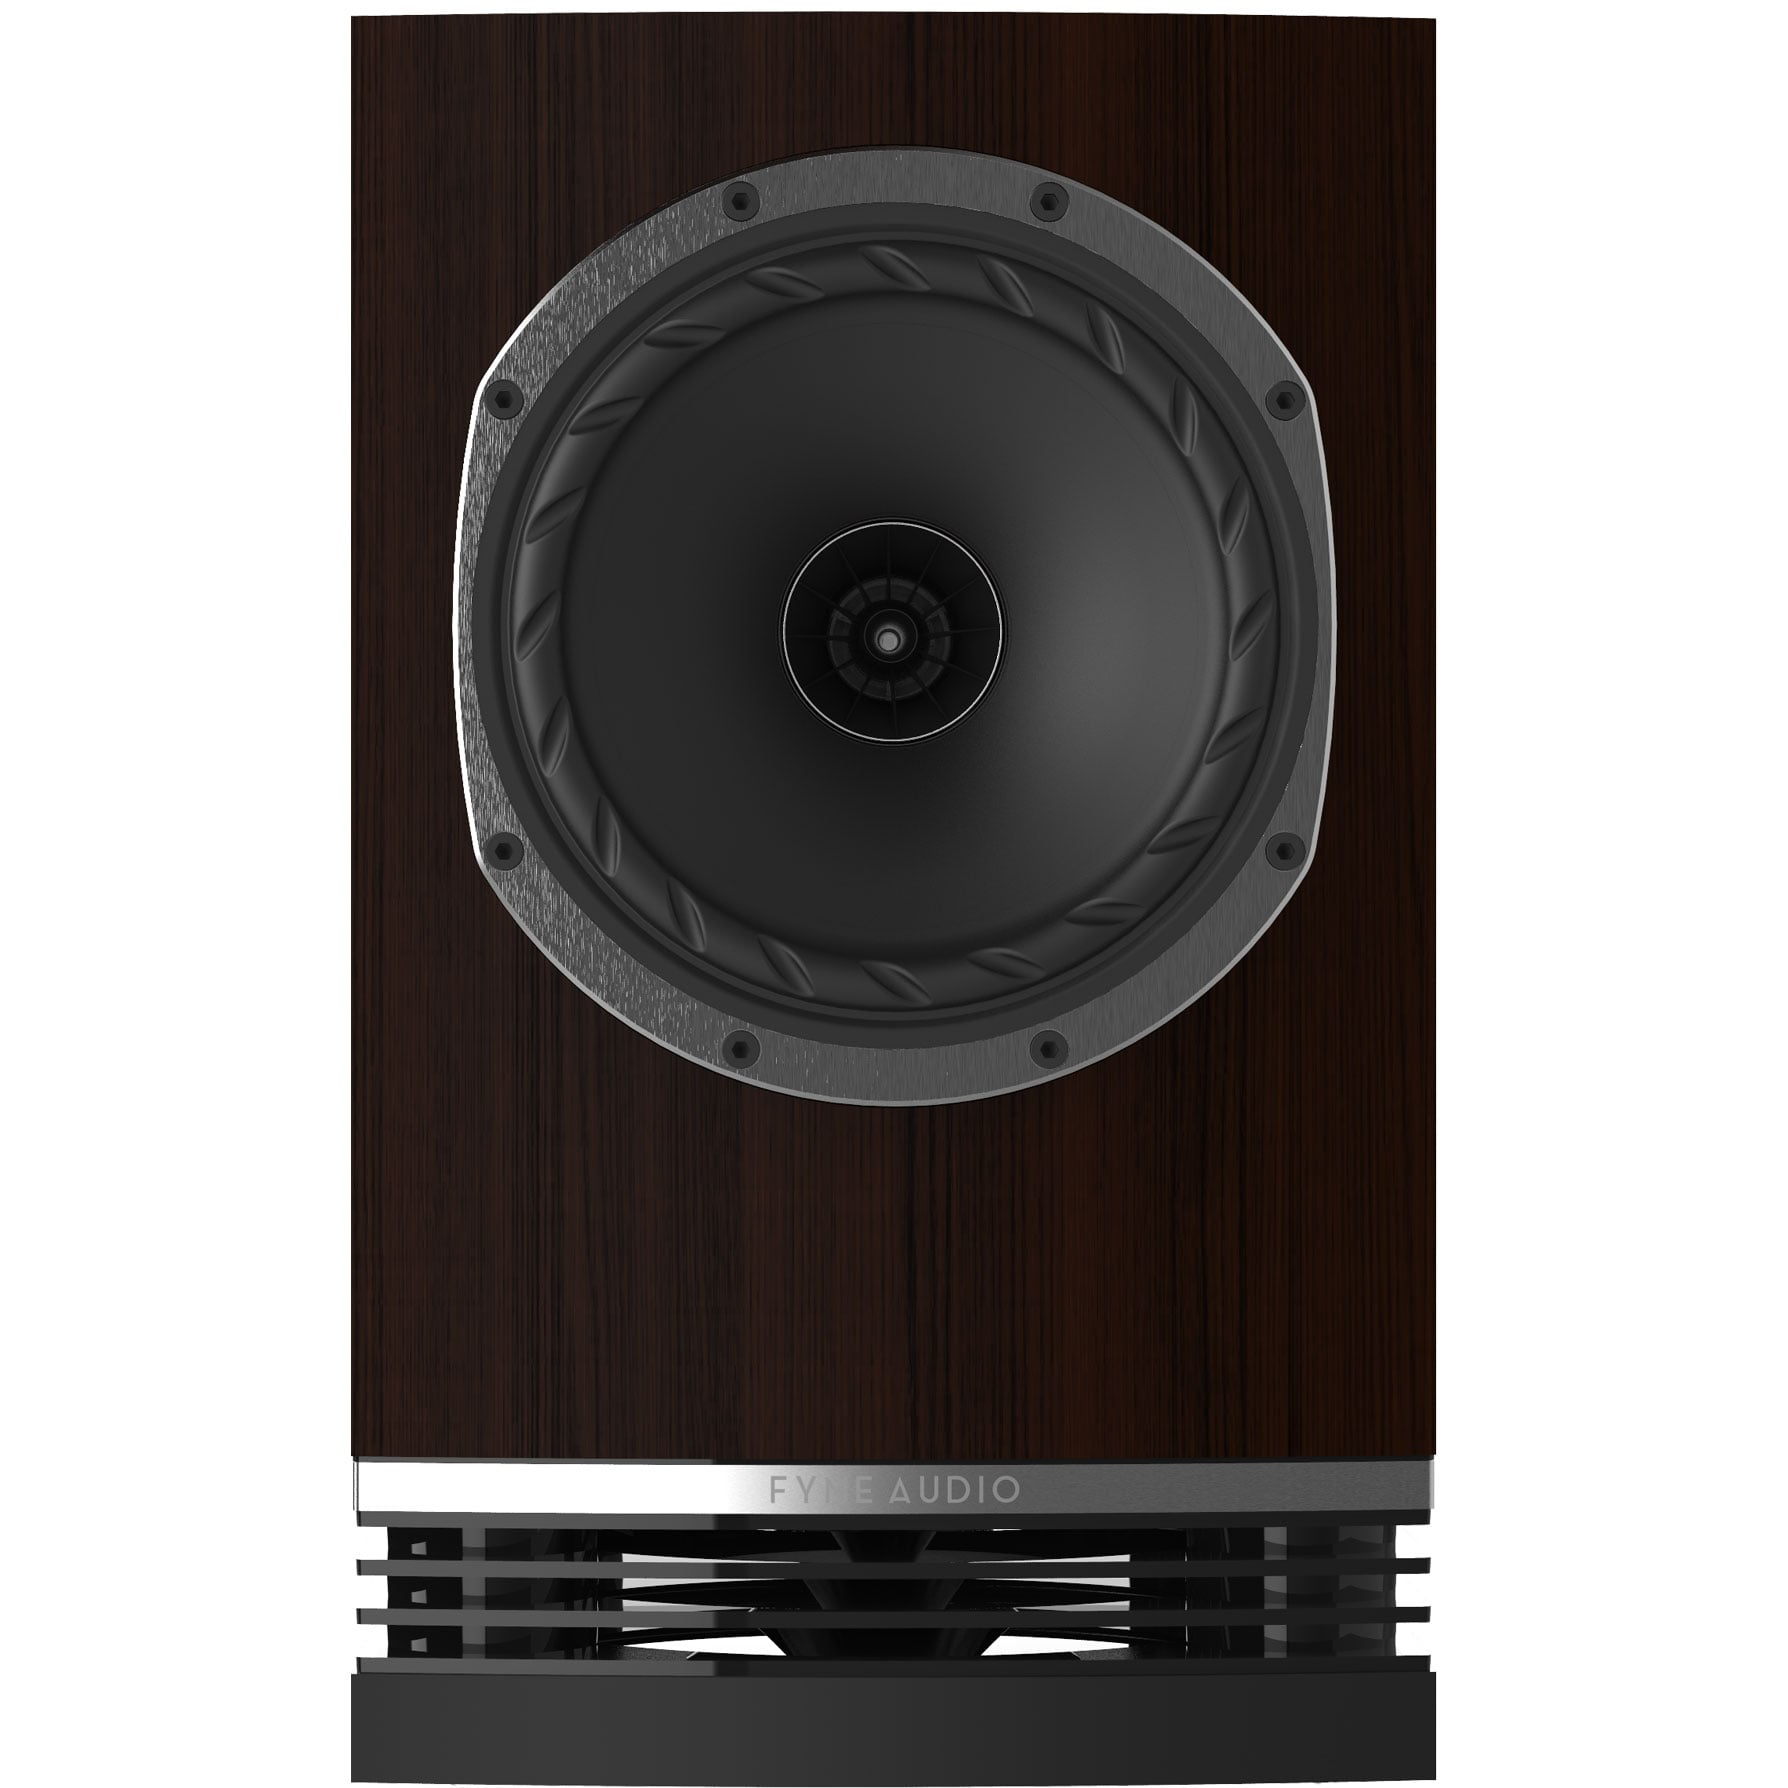 Fyne Audio F5010 monitor hangfal